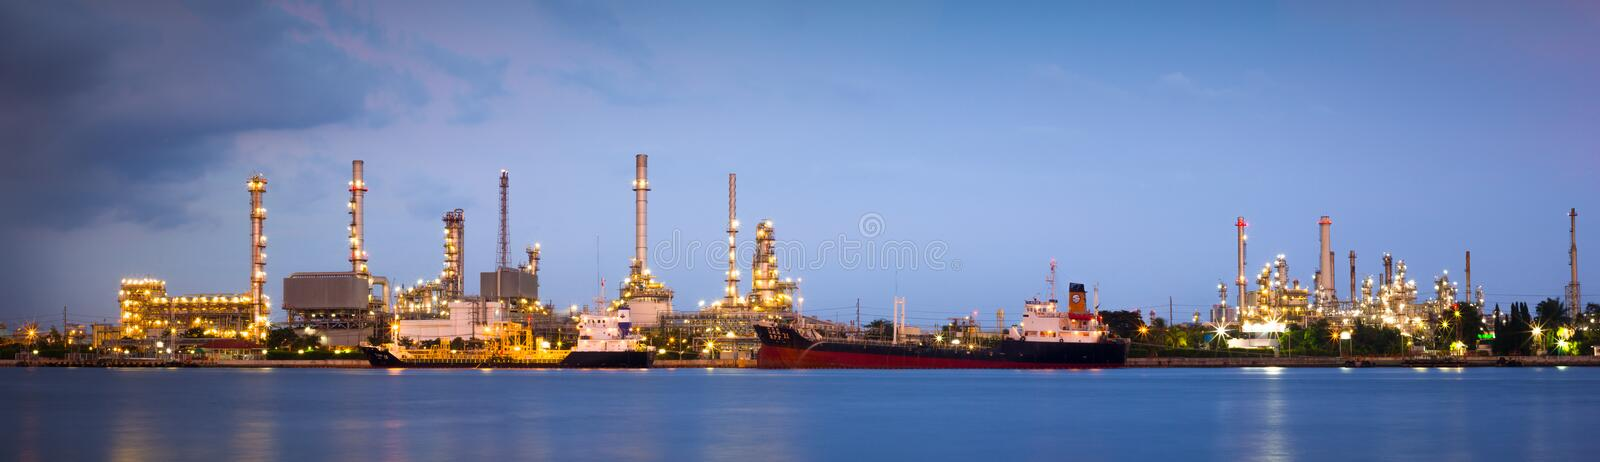 Oil refinery industry plant in twilight time stock image